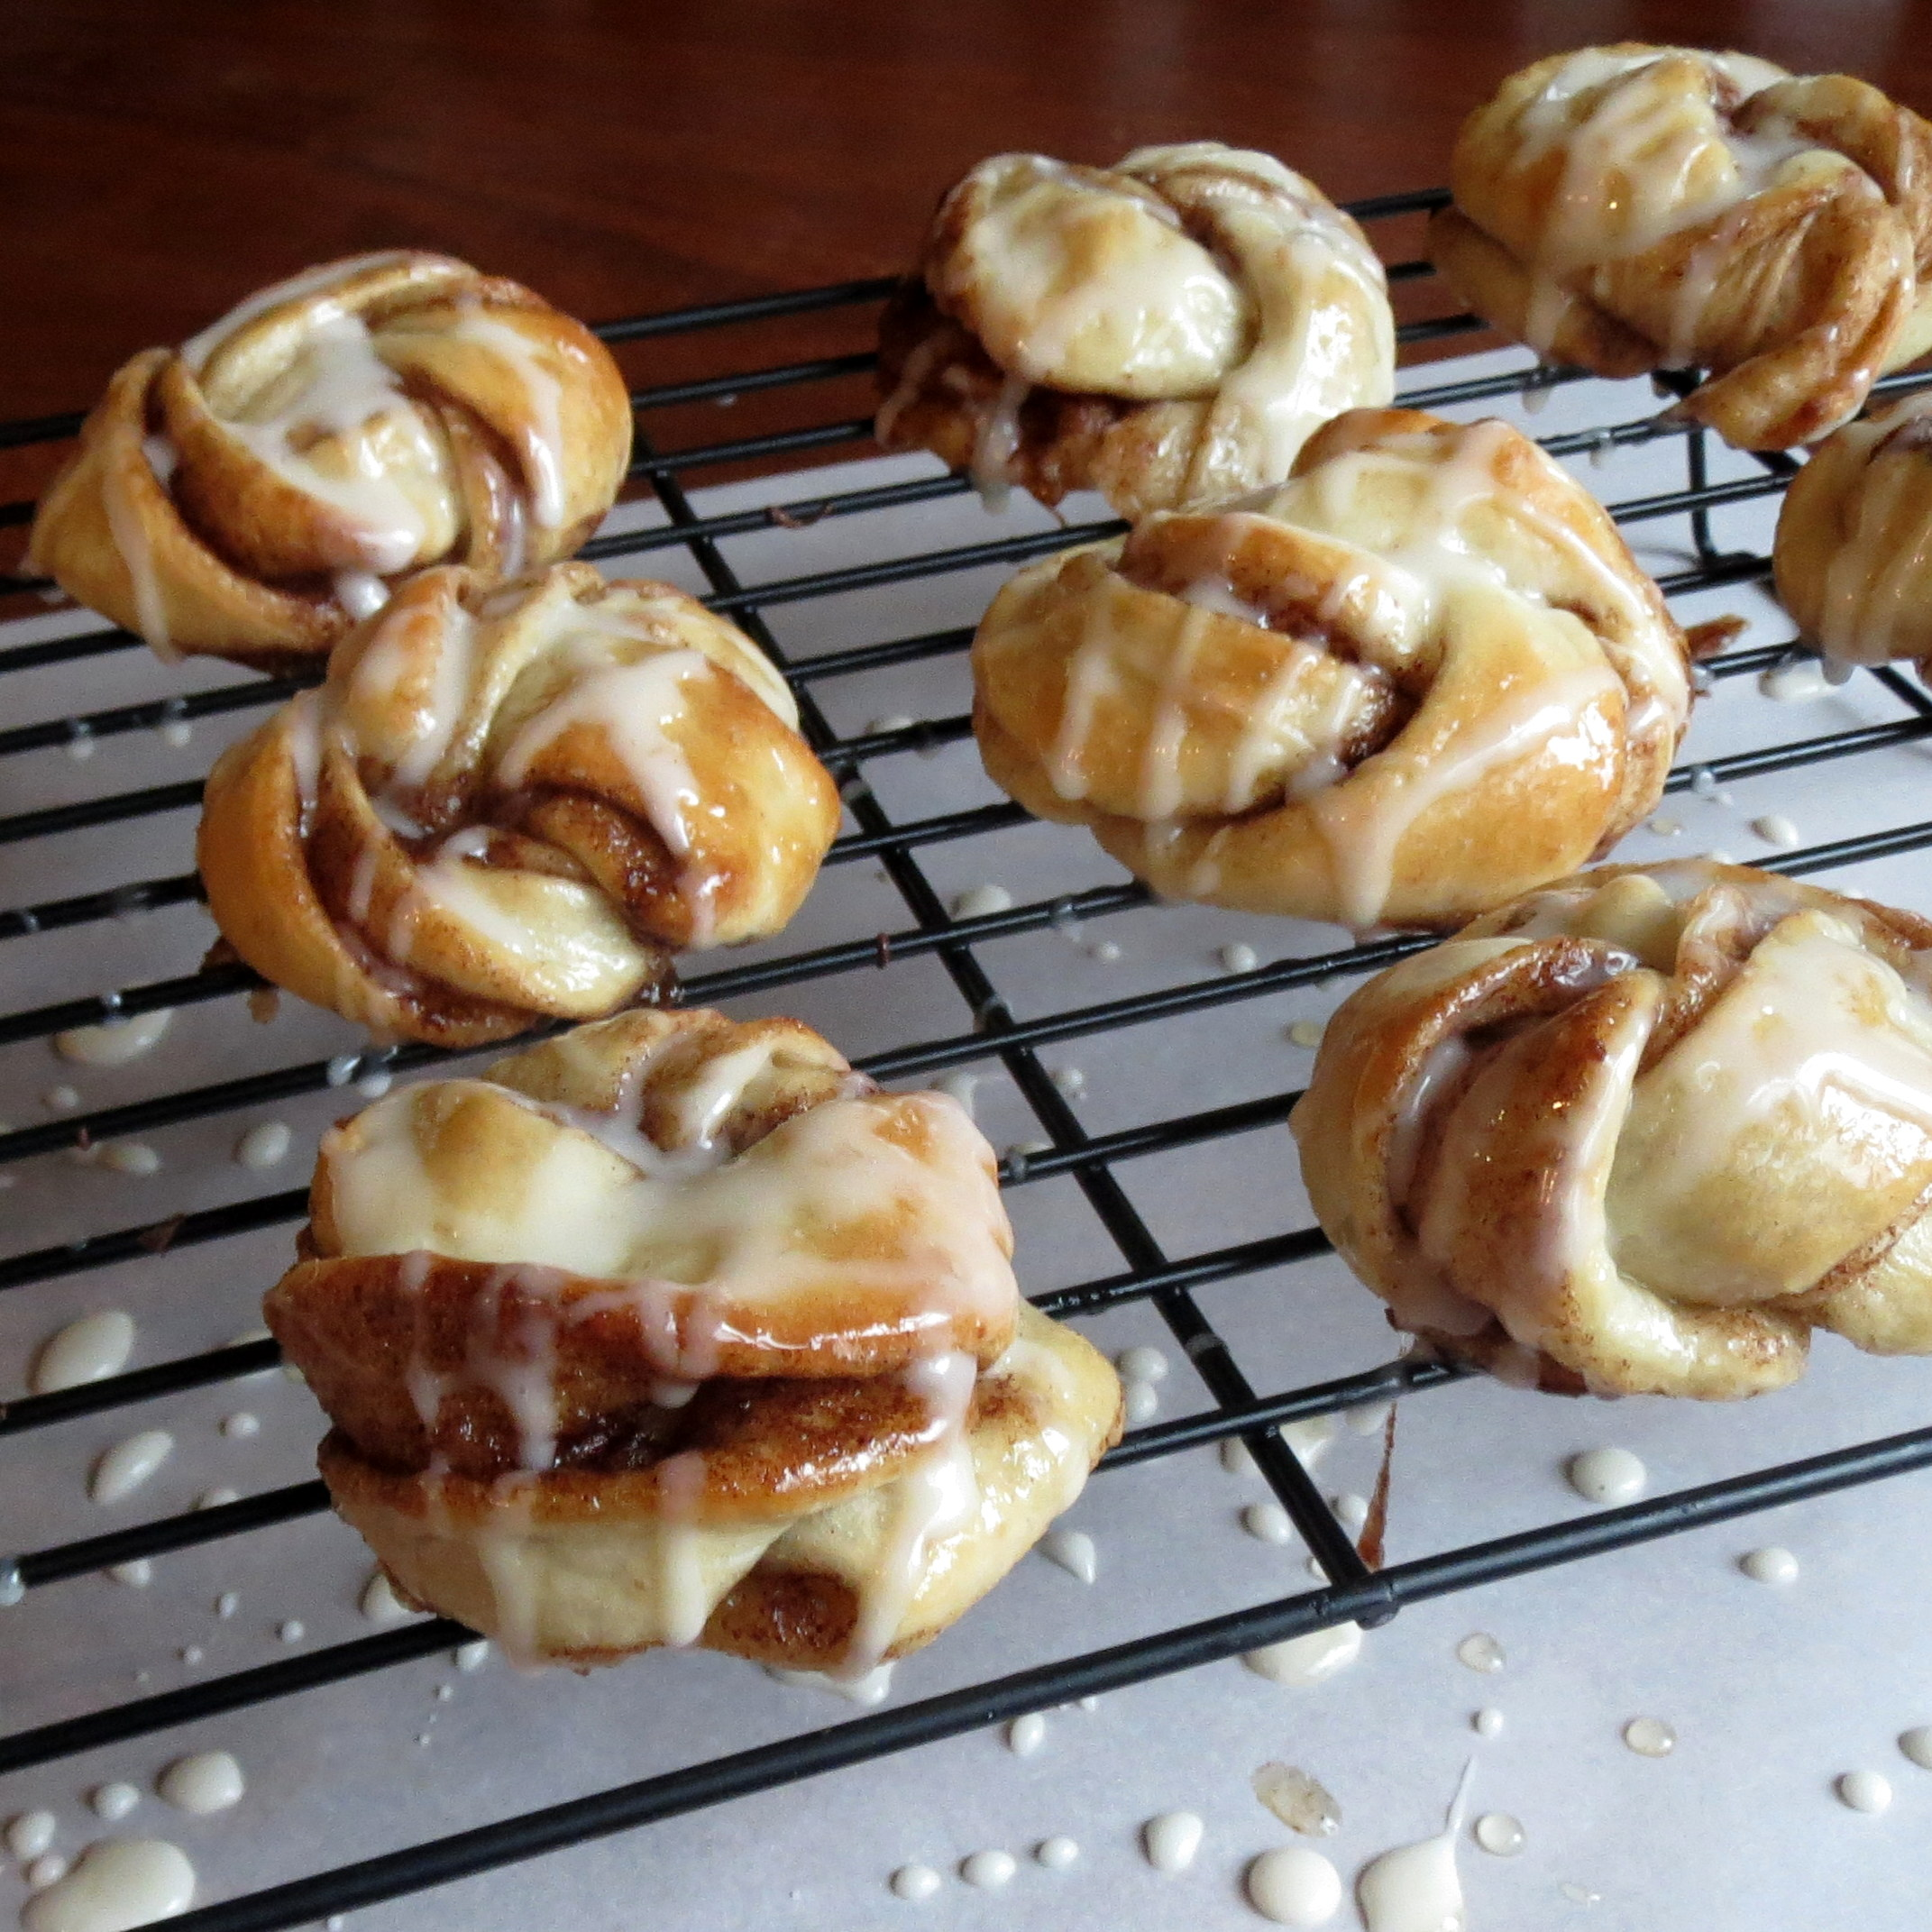 knots cinnamon knots cinnamon twist knots cinnamon sugar knots ...